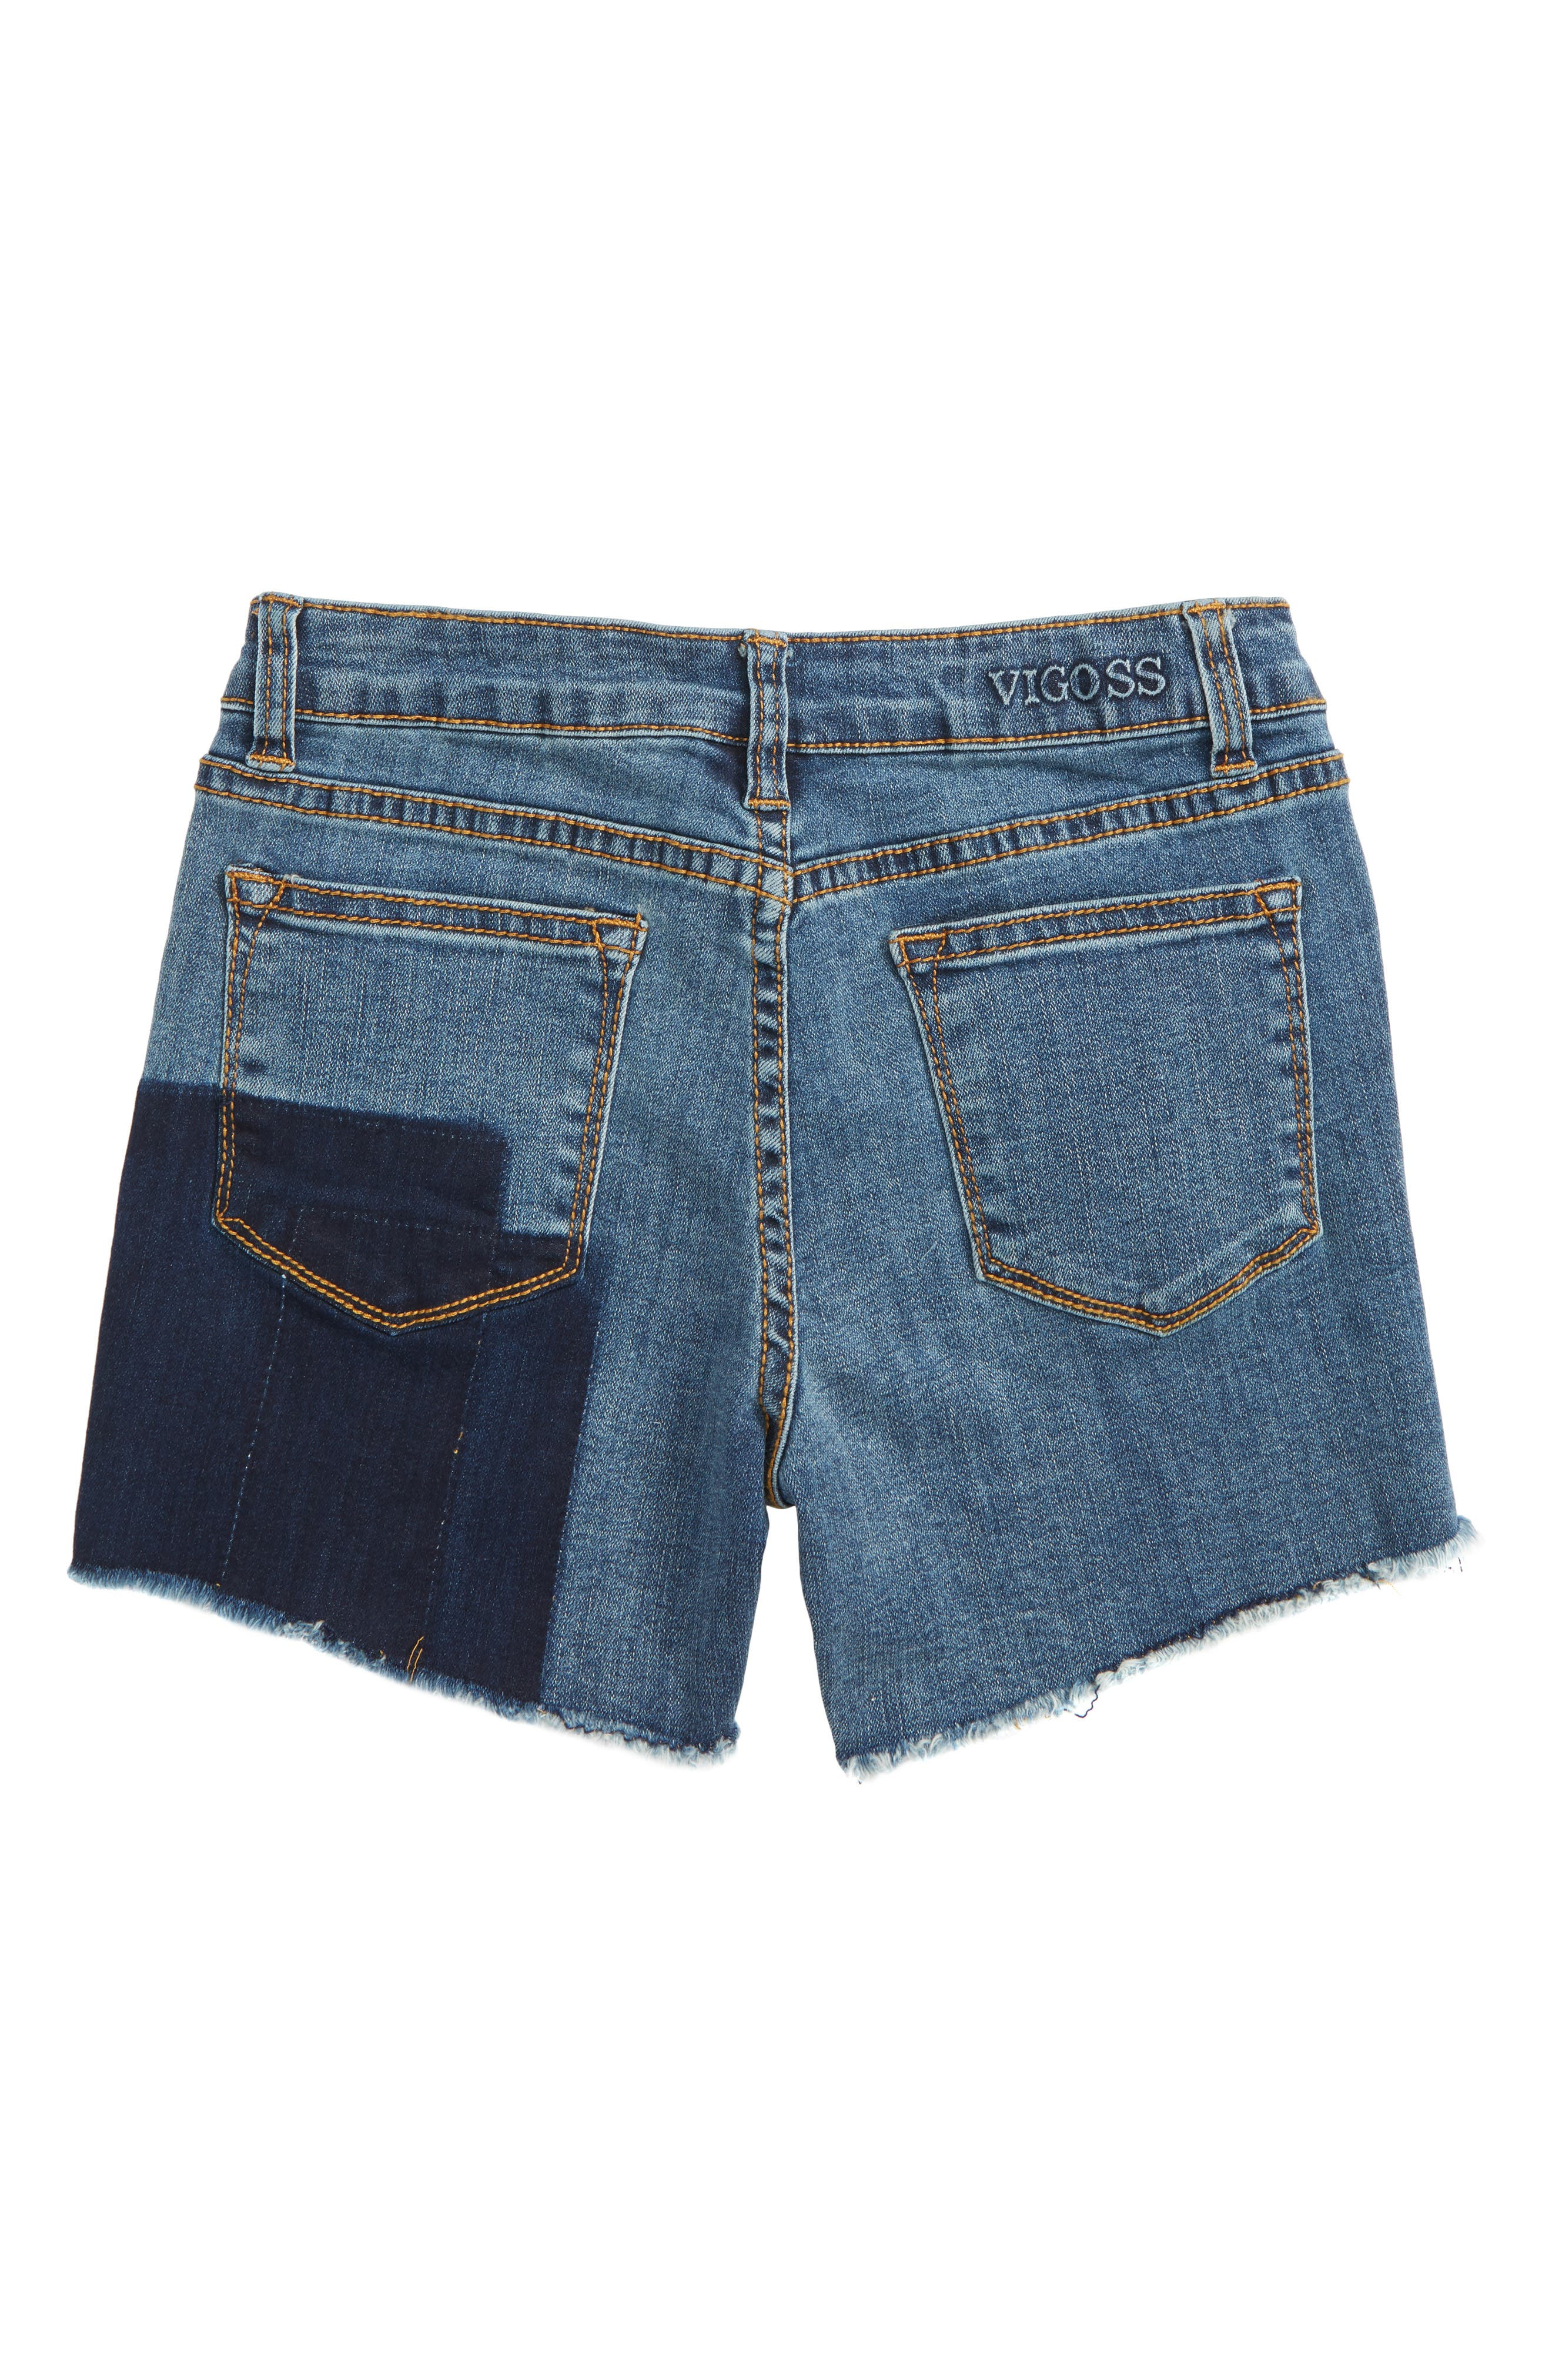 Shadow Frayed Cutoff Denim Shorts,                             Alternate thumbnail 2, color,                             Twilight